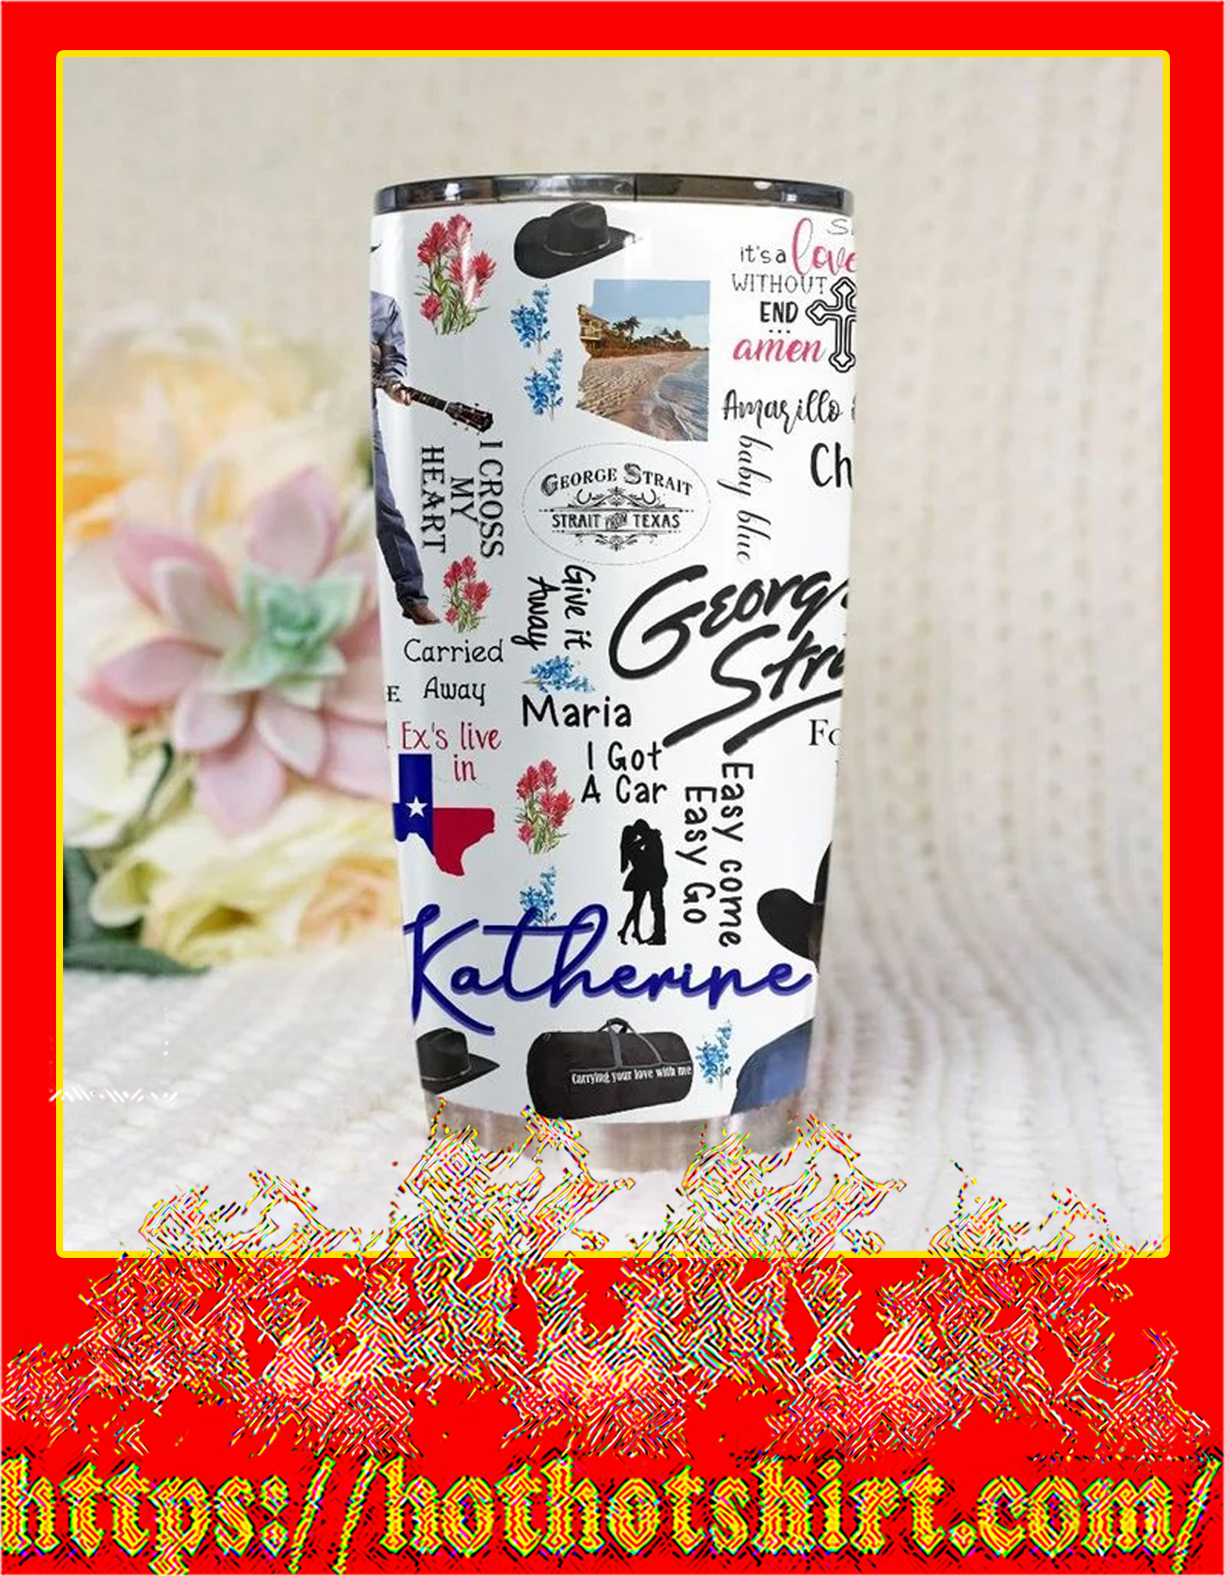 George strait personalize custom name tumbler - detail